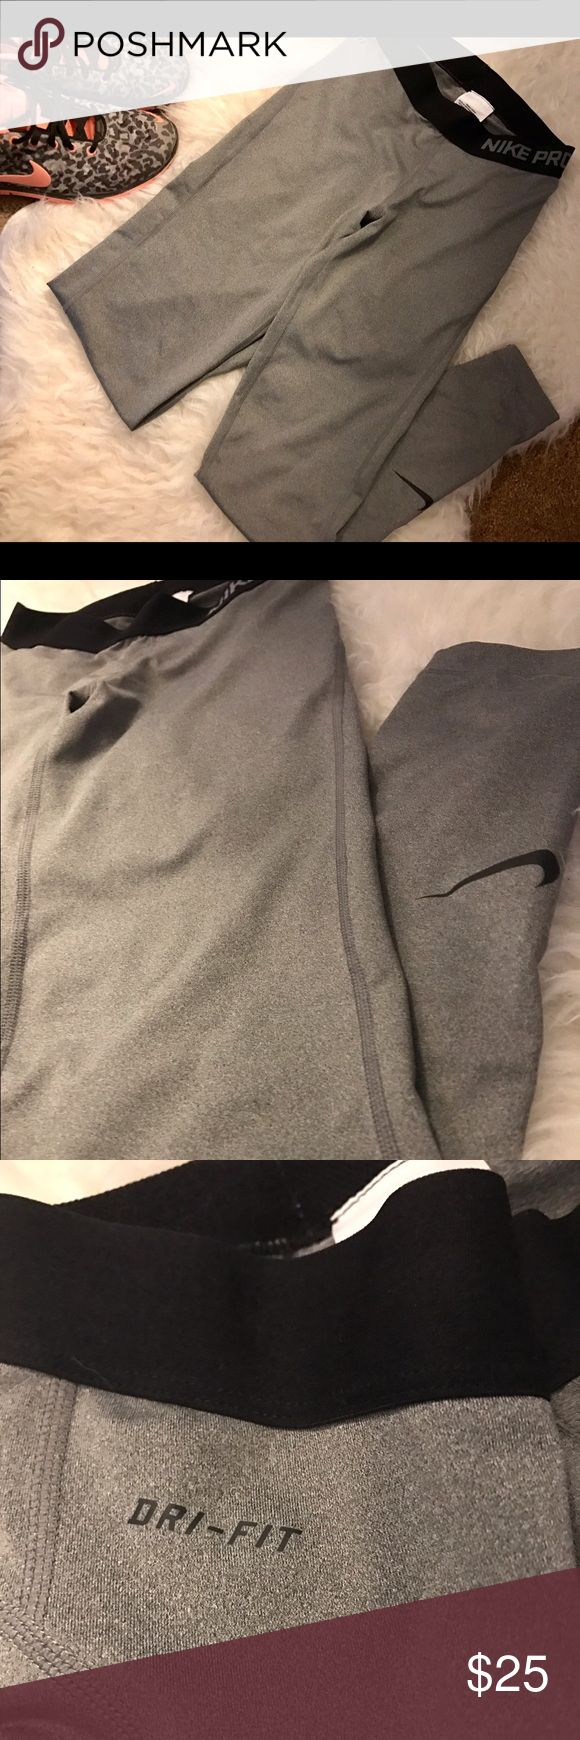 Nike Pro Dri-Fit Tights Great condition, grey with black Nike logo on left leg. Full length. 80% polyester, 20% Spandex. Nike Pants Leggings